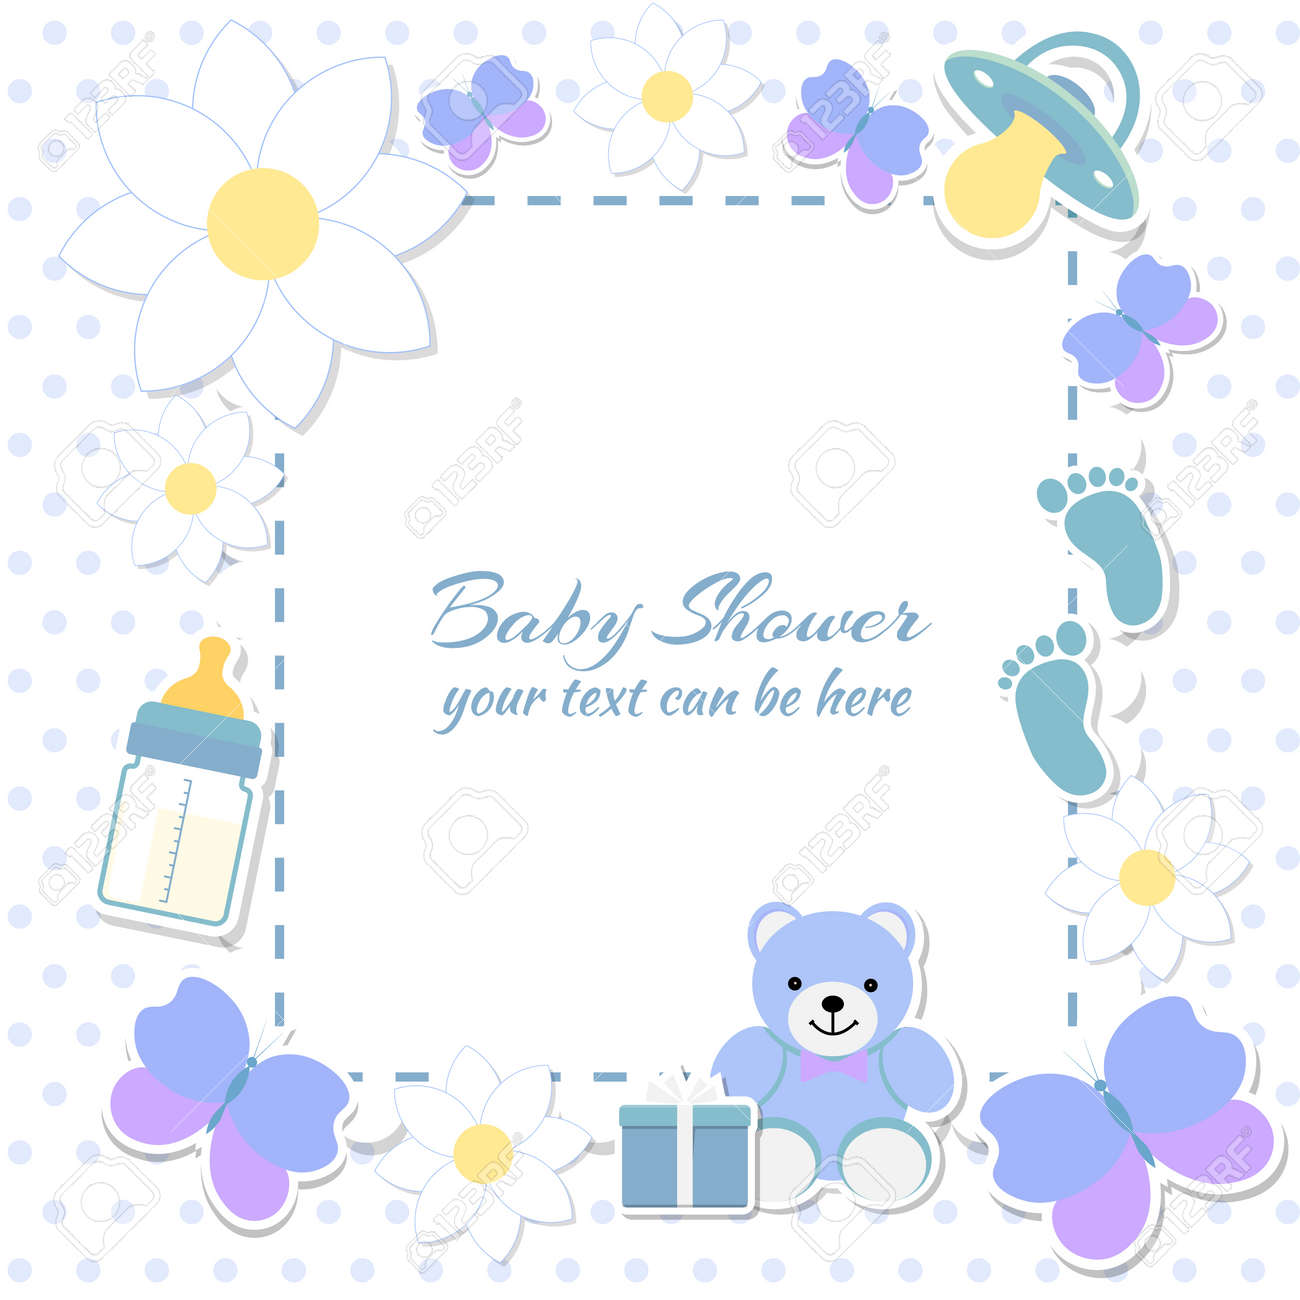 Baby shower boy invitation card place for text greeting cards baby shower boy invitation card place for text greeting cards vector illustration m4hsunfo